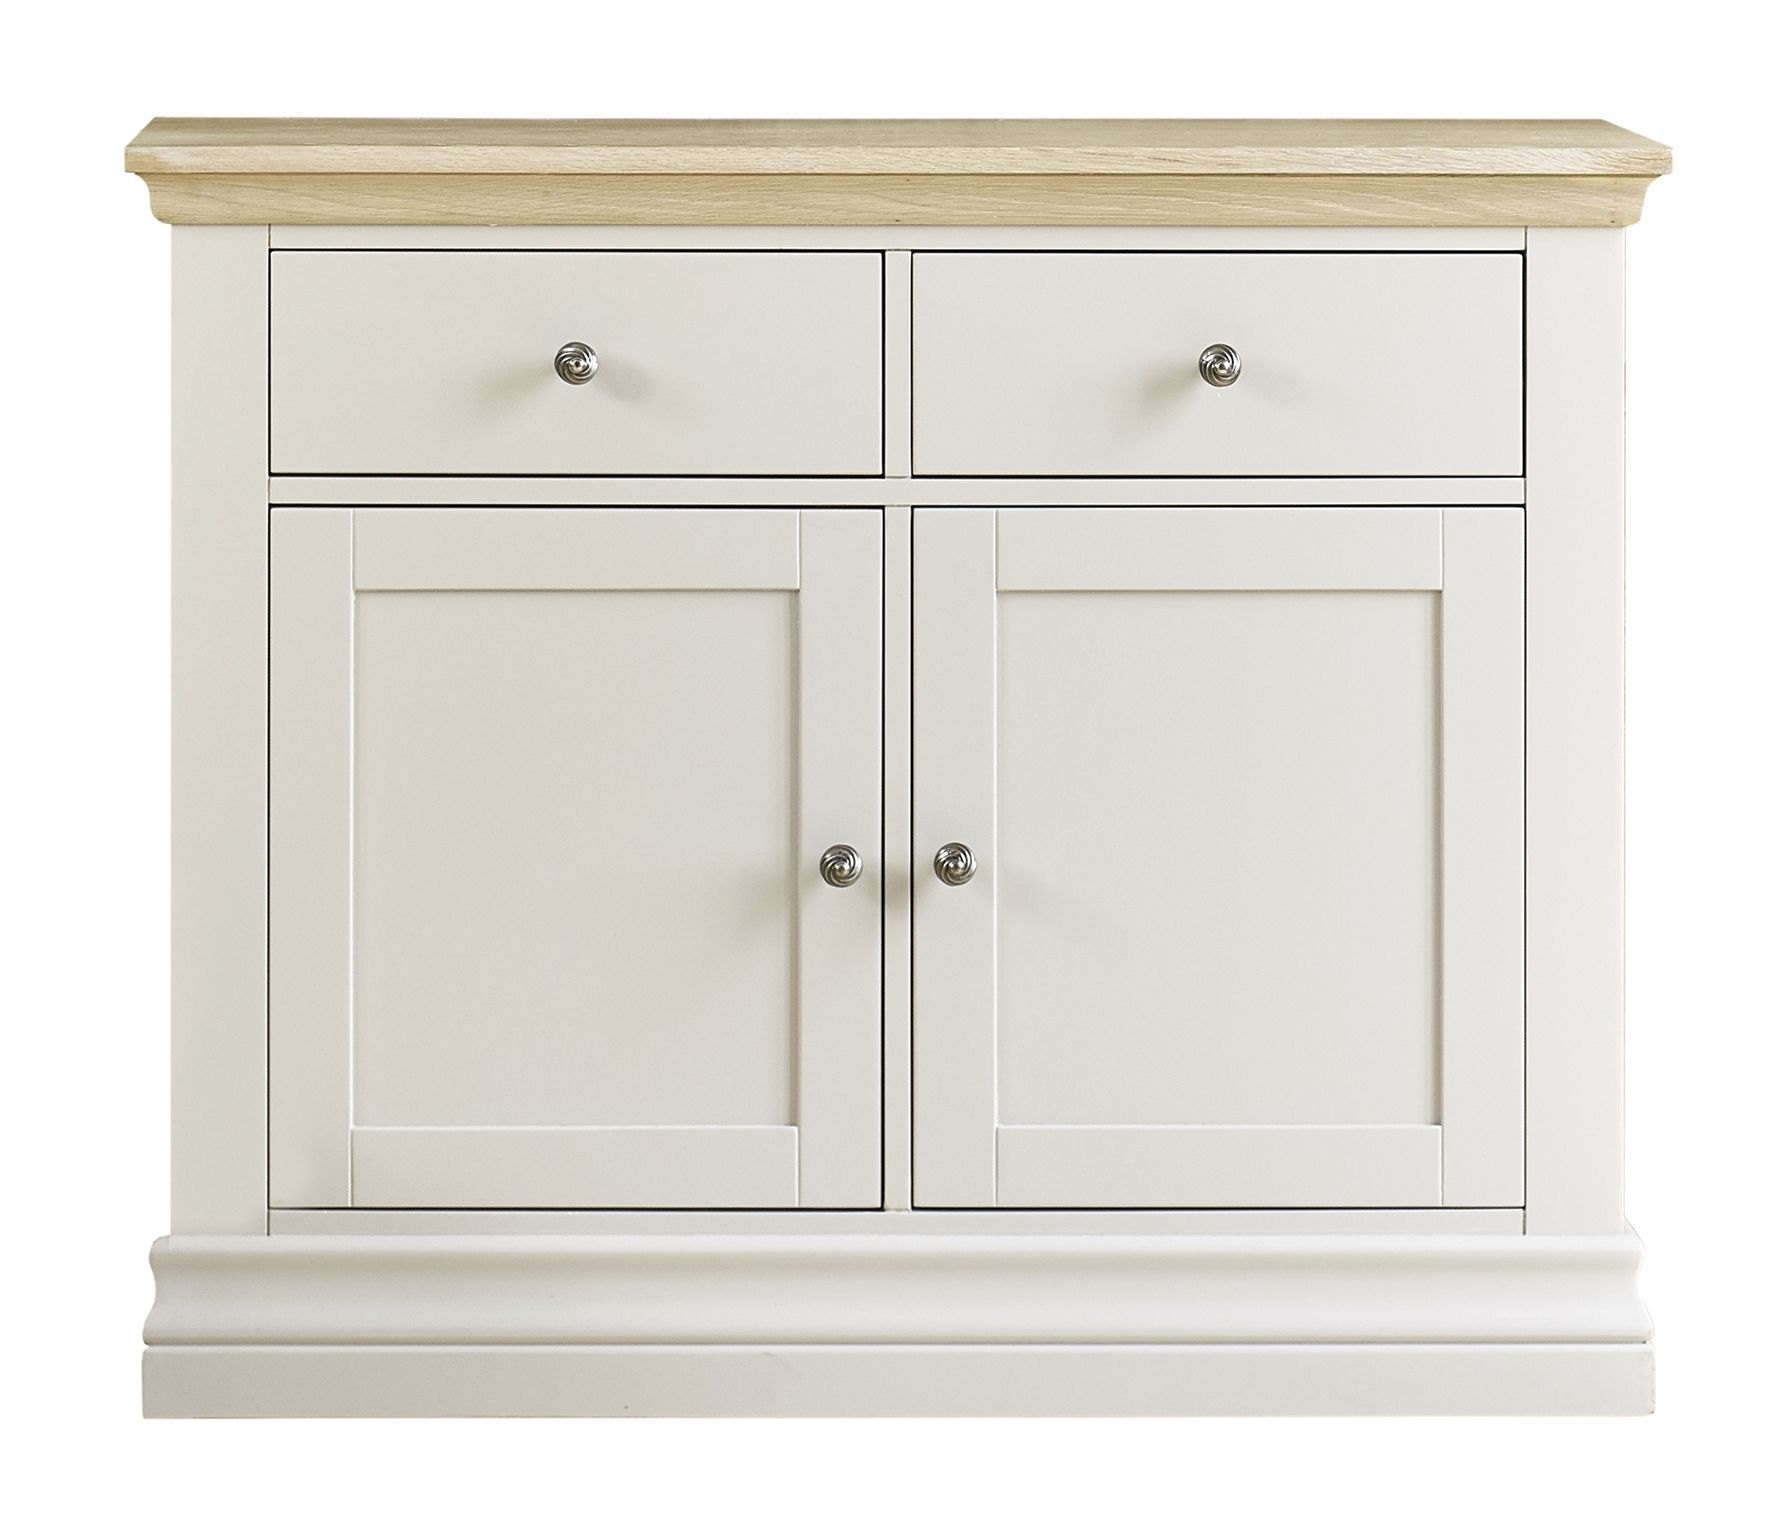 Corndell Annecy Small Sideboard hand painted in Cotton a pale grey ...